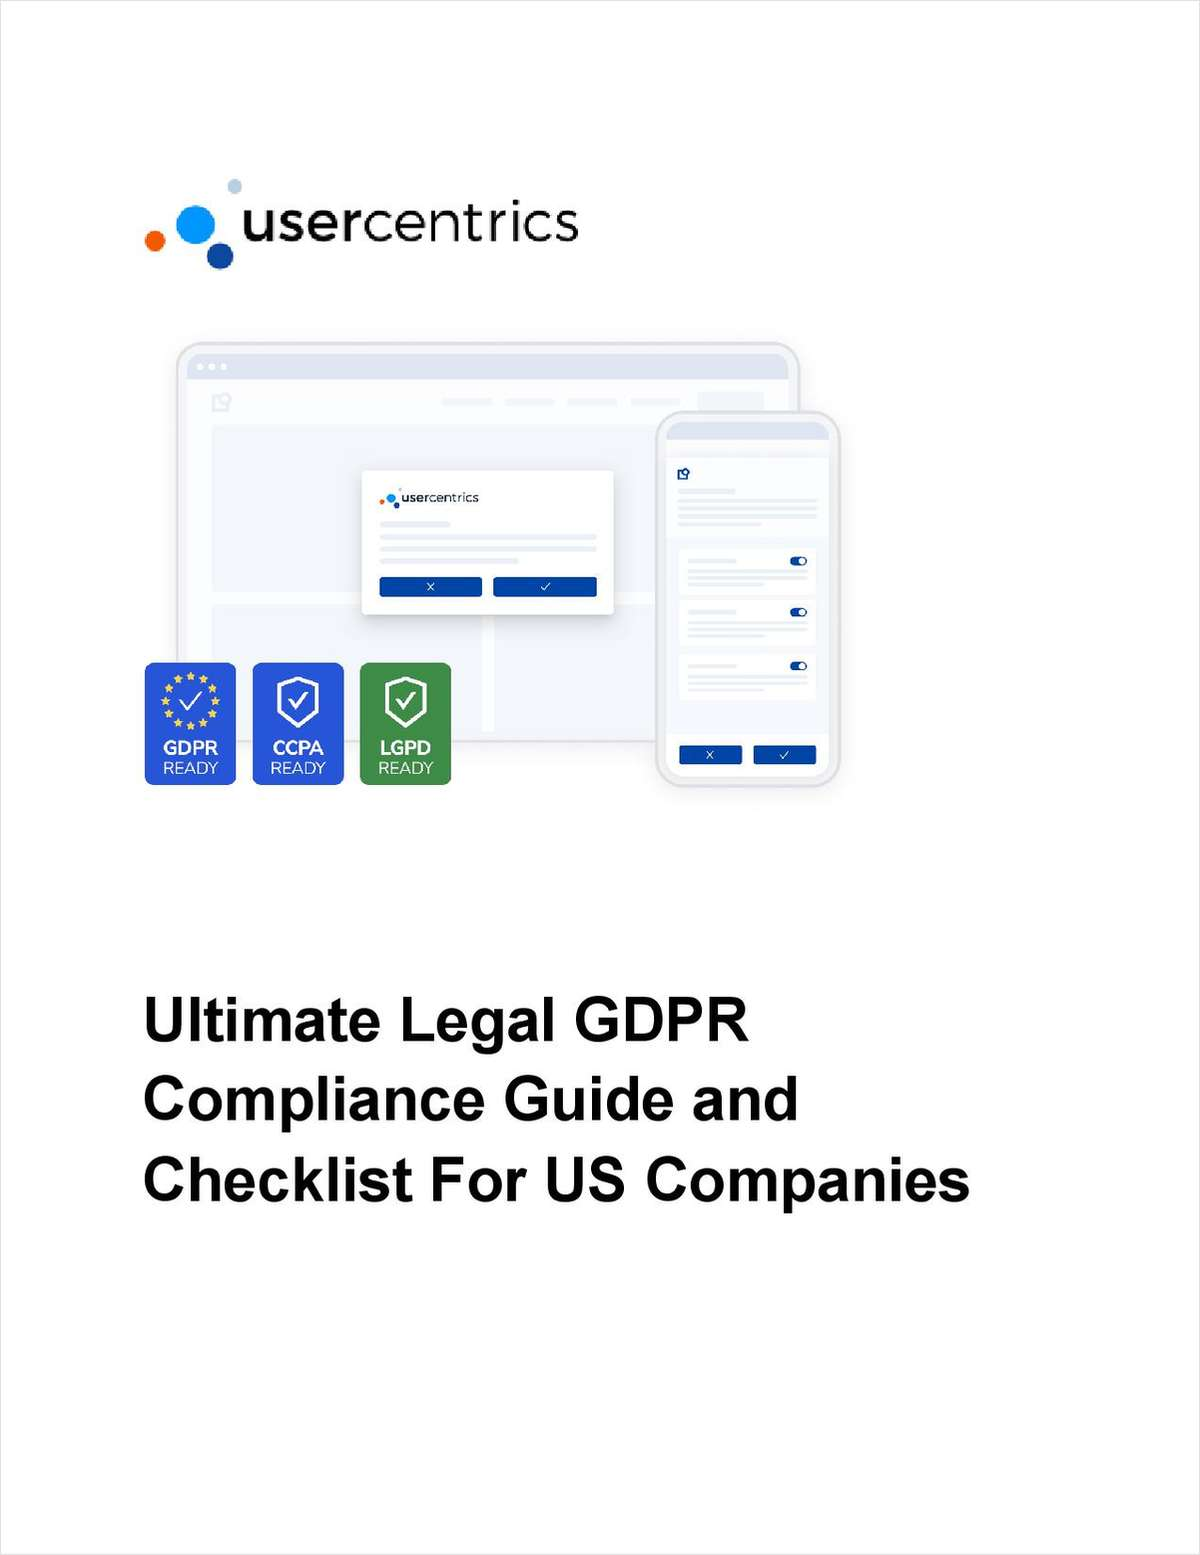 Ultimate Legal GDPR Compliance Guide and Checklist for US Companies